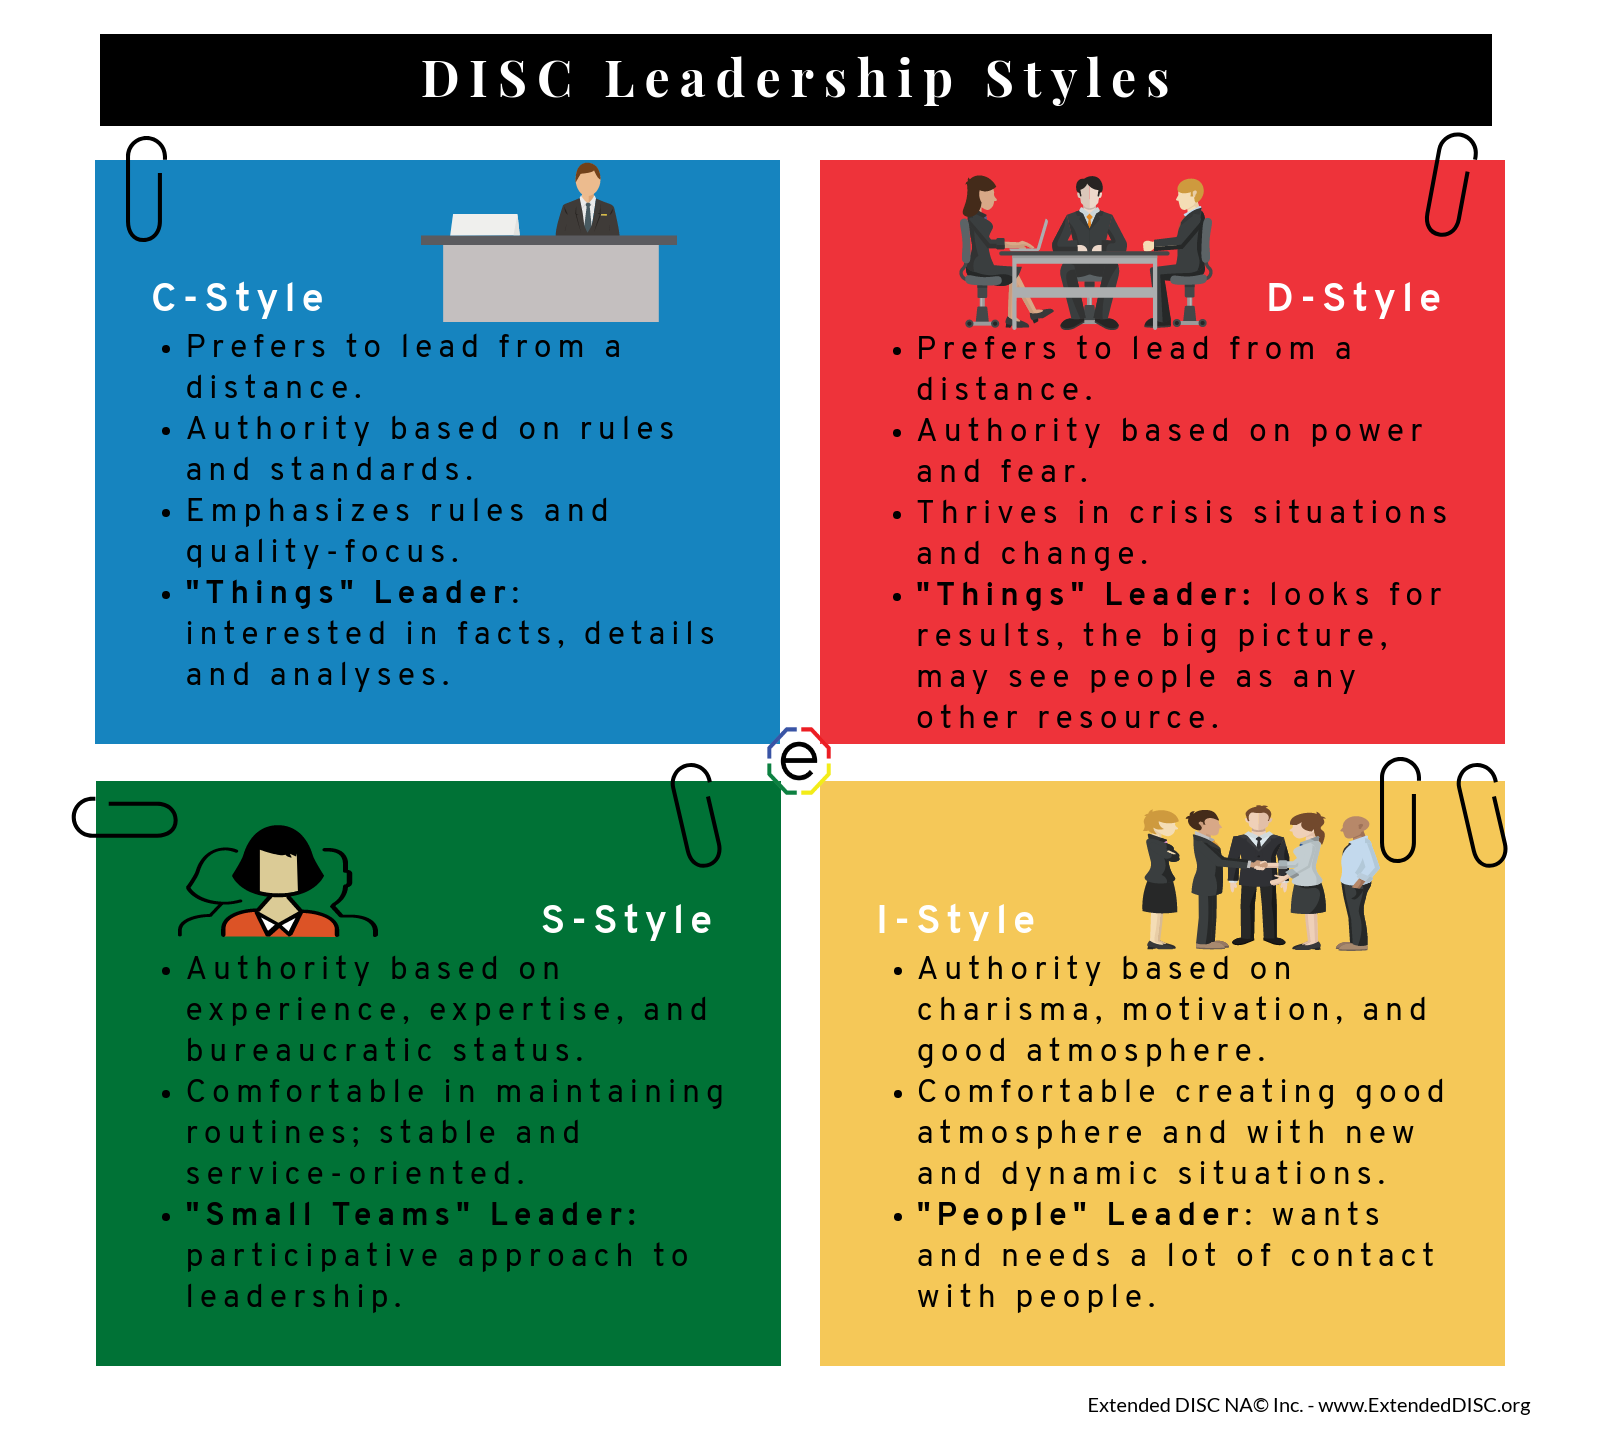 DISC Leadership Styles Infographic